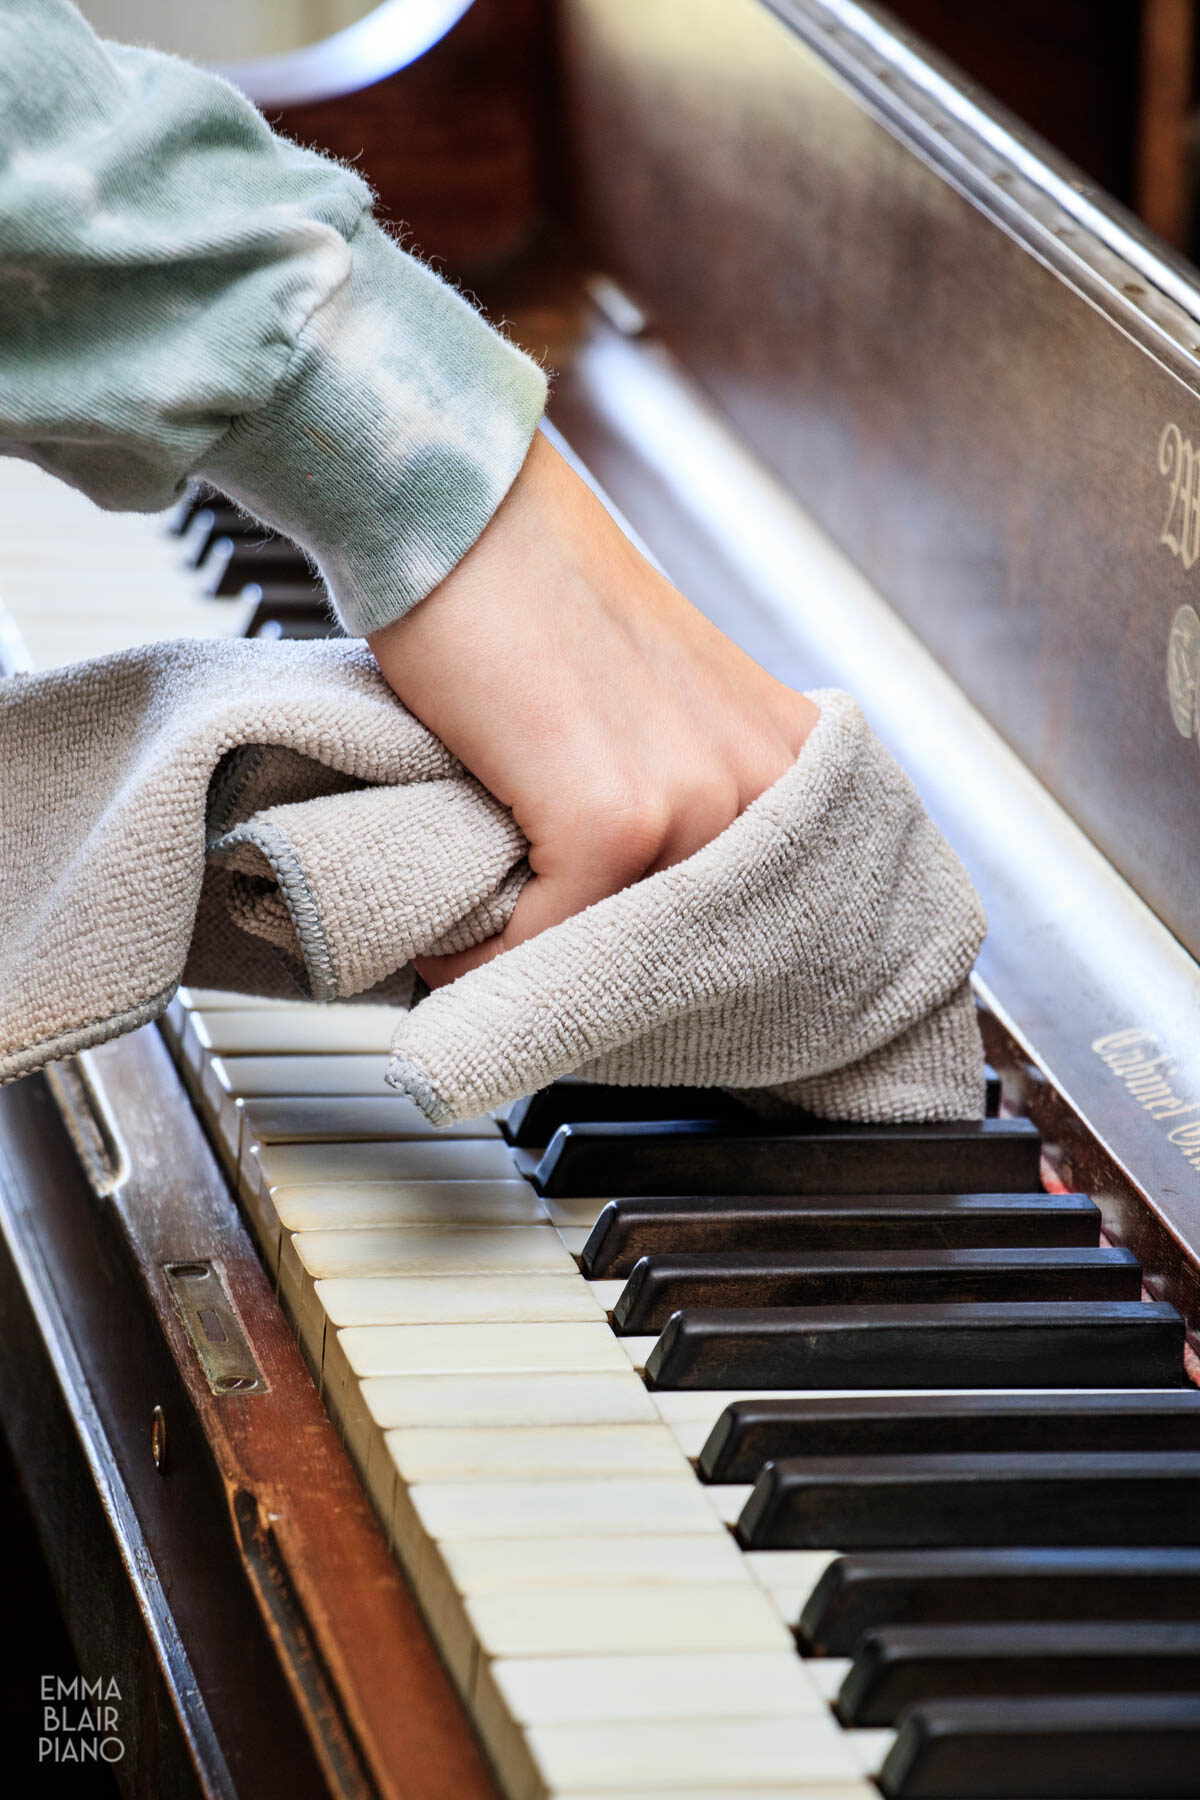 teenage girl cleaning the piano keys with a microfiber cloth